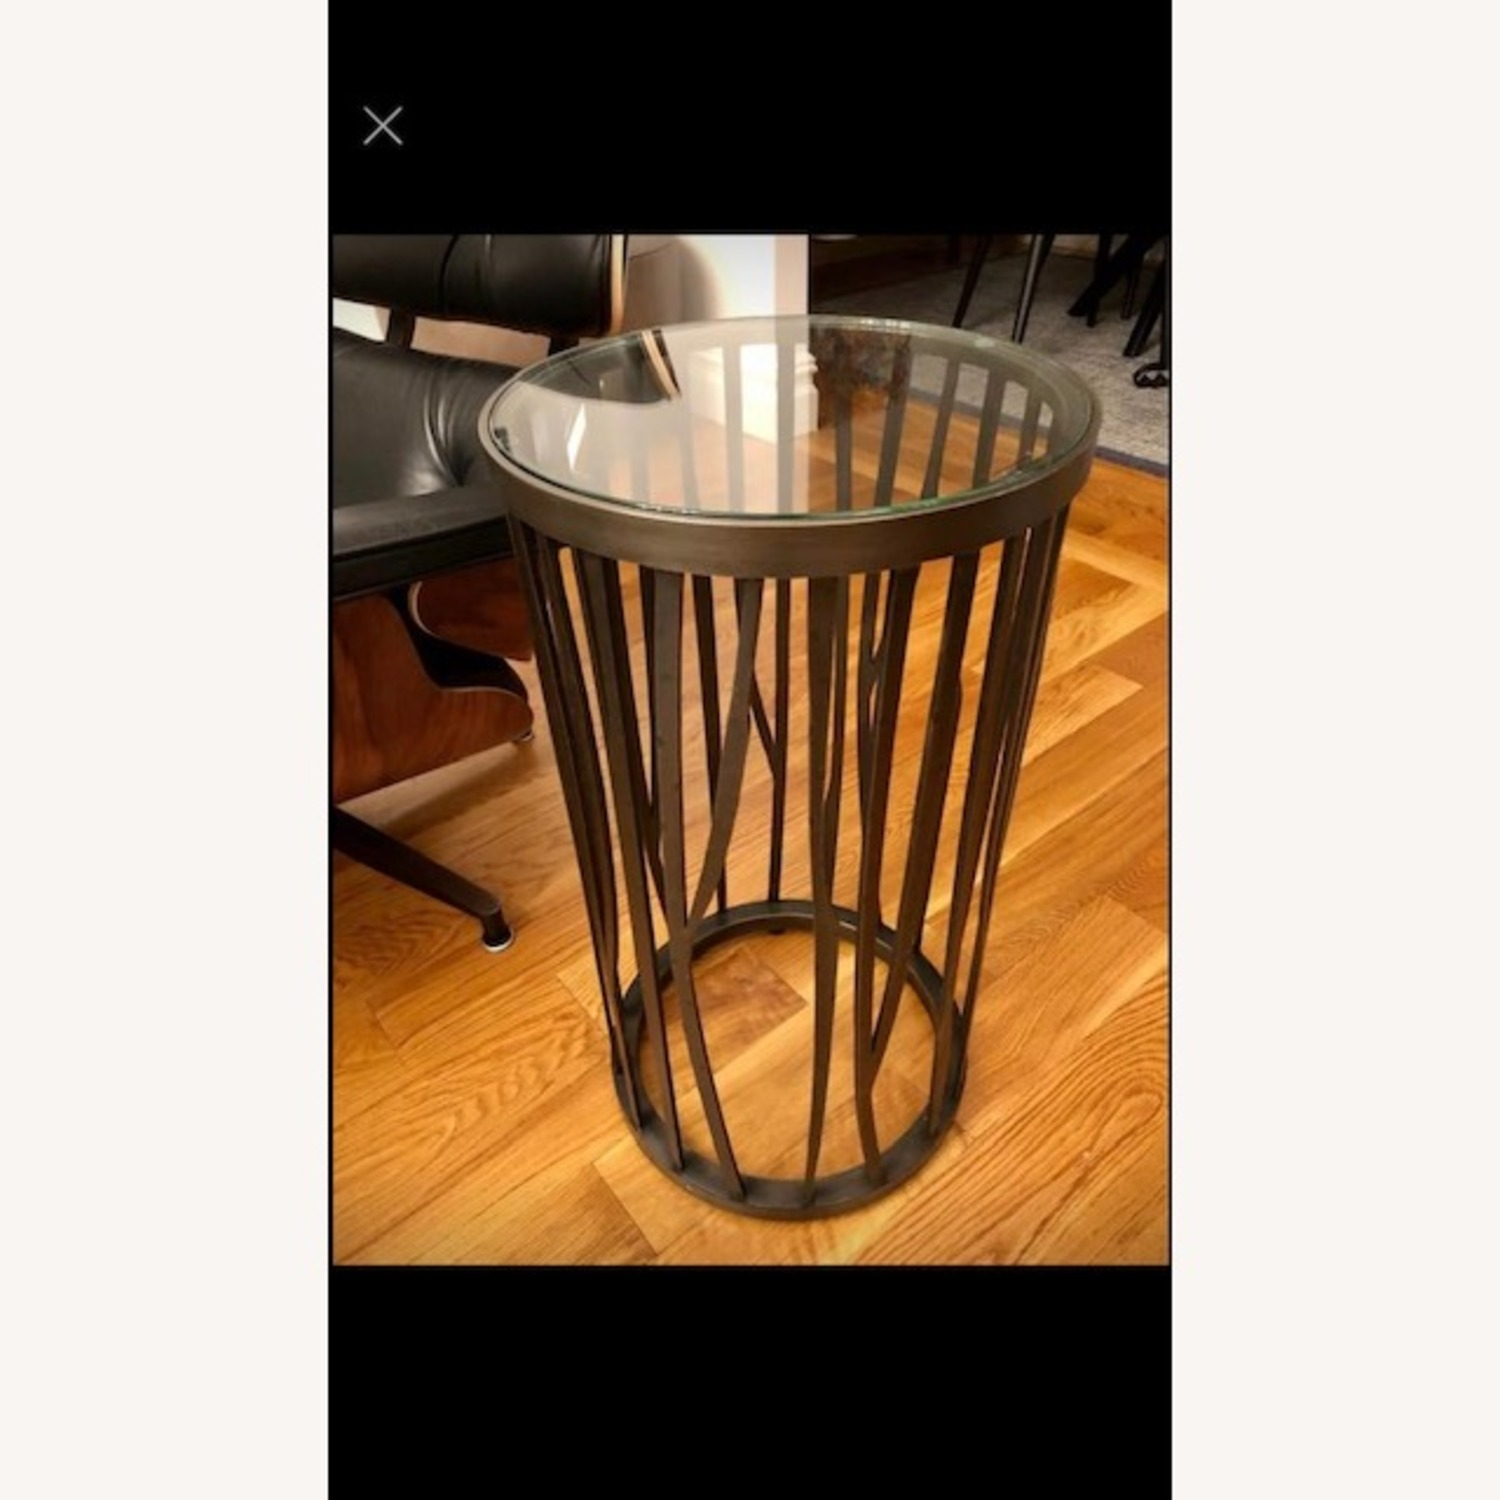 Ethan Allen Accent or Side Table - image-1